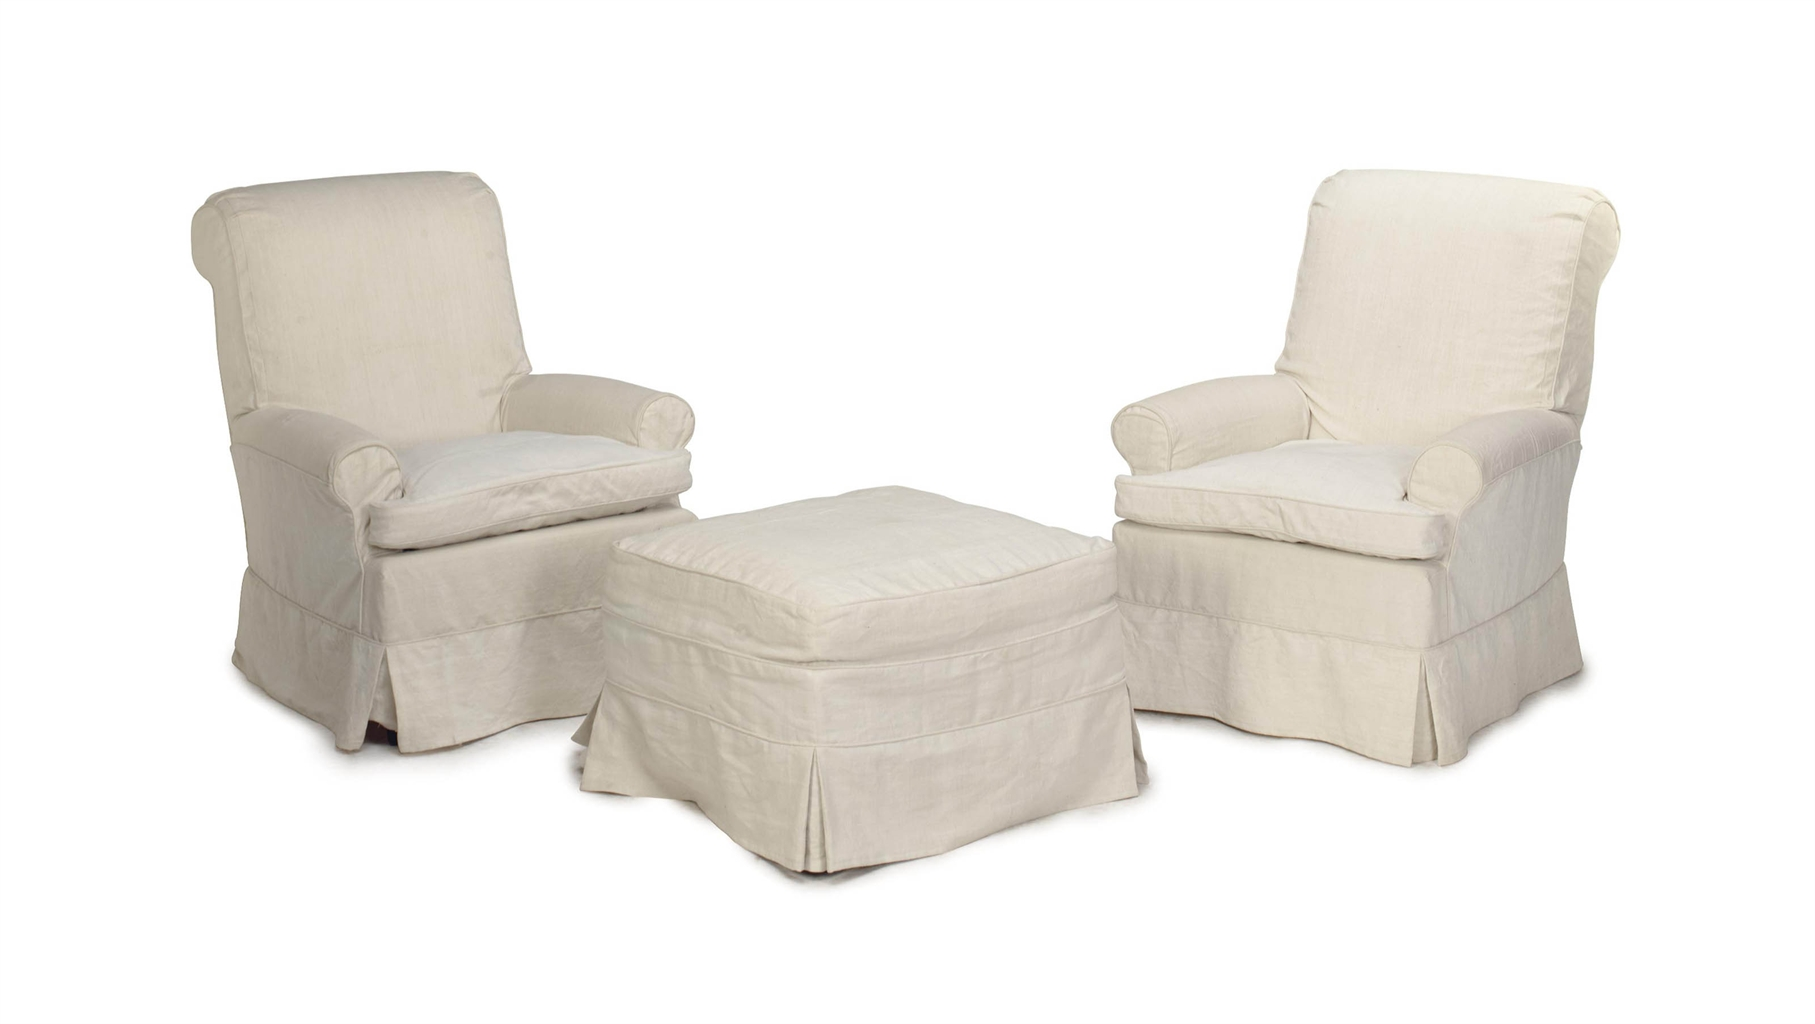 white linen chair patio webbing replacement a pair of off upholstered club chairs and an